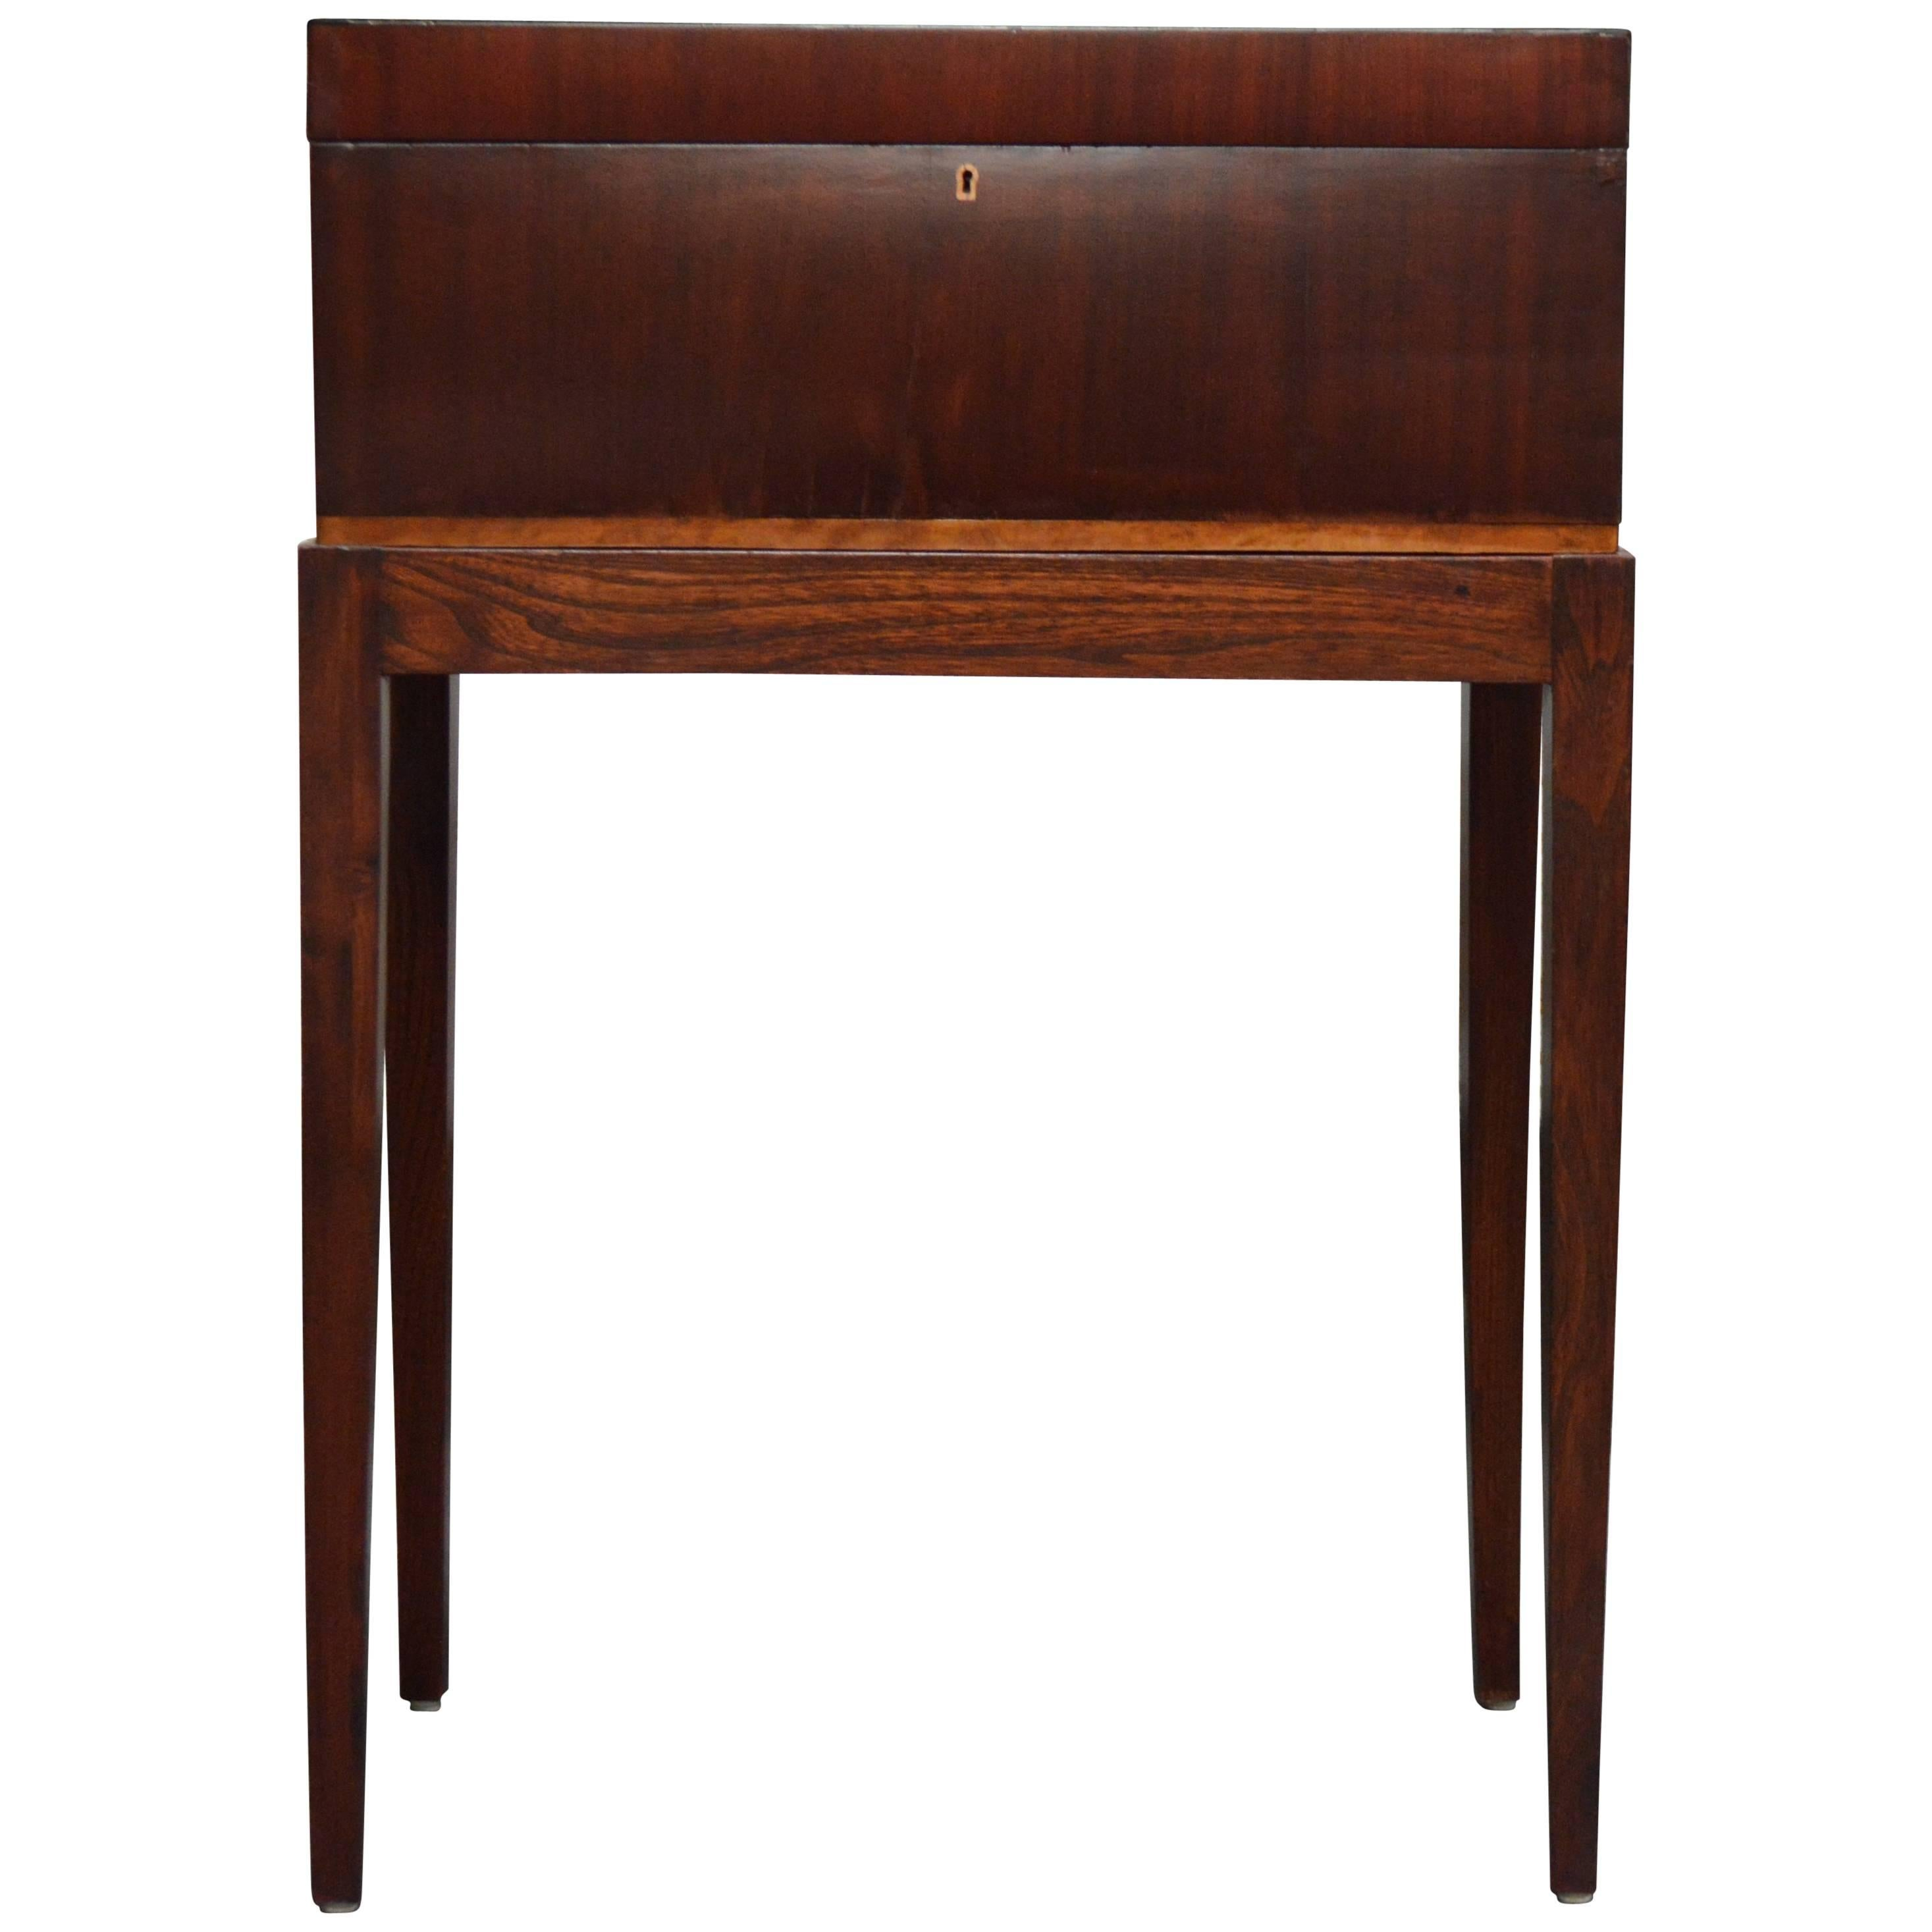 Antique Mahogany Intarsia Writing Box or Lap Desk on Rosewood Stand